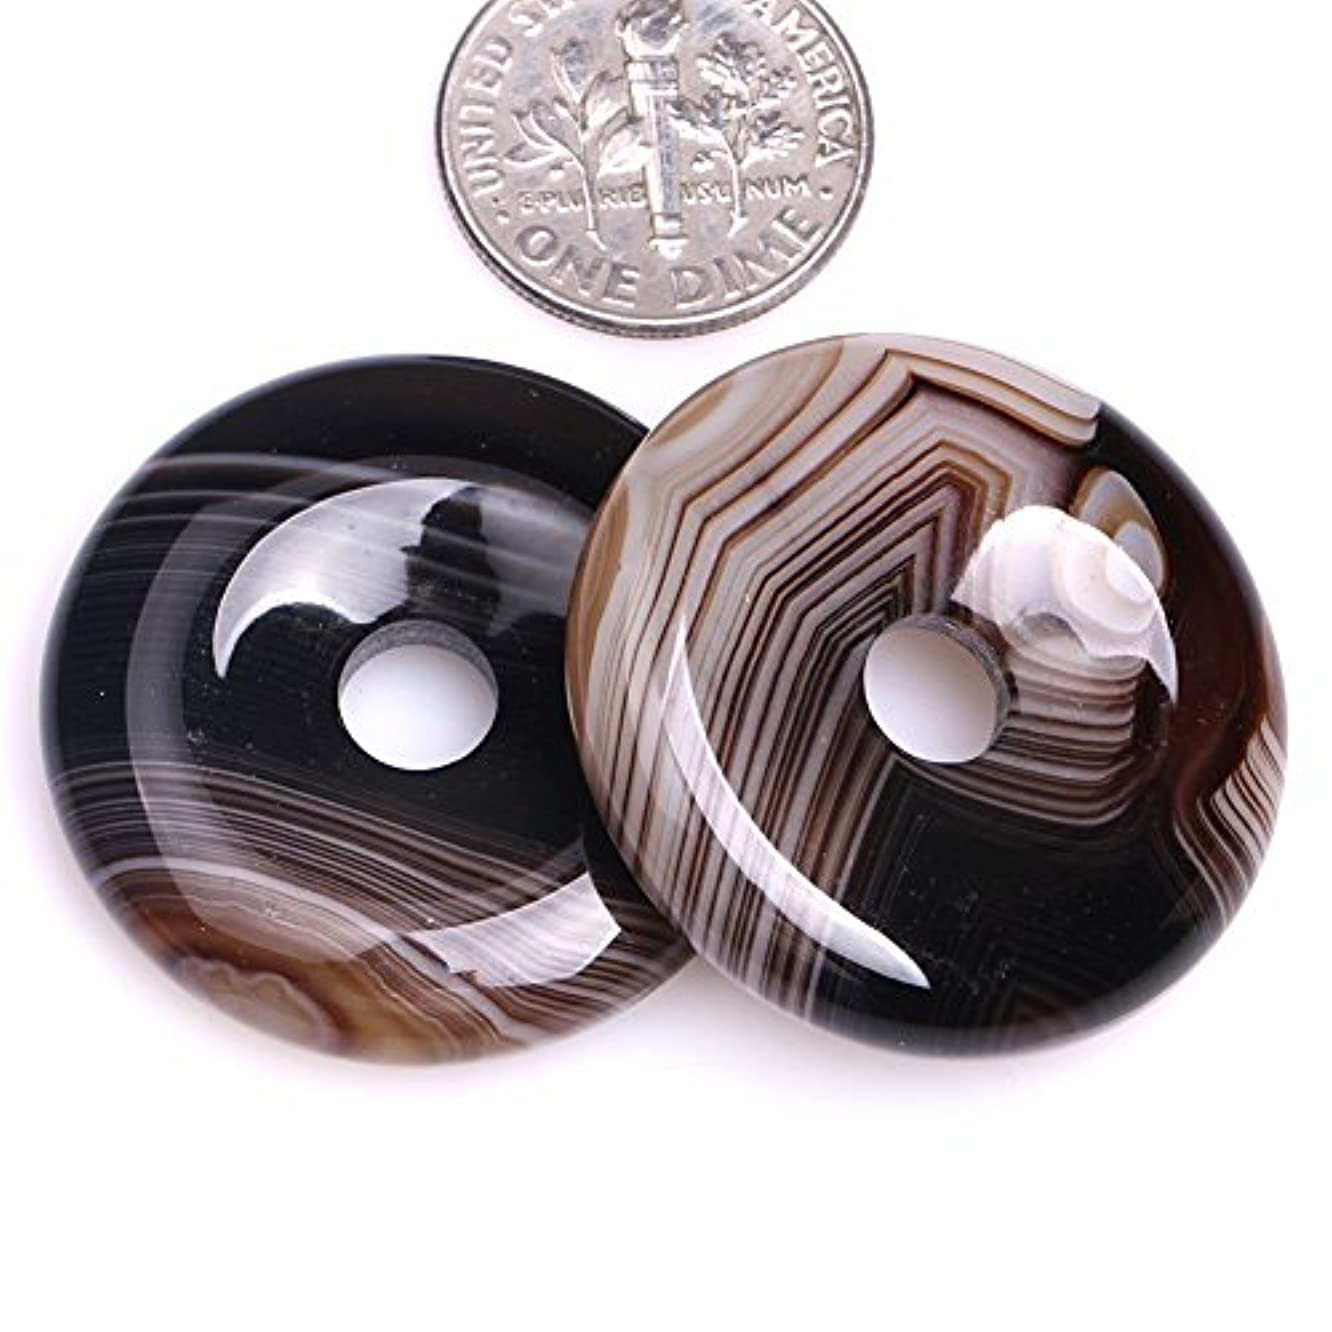 GEM-inside Natural 30mm Donuts Rings Coffe Brown Onyx Sardonyx Agate Stone Beads for Jewelry Making 1 PCS